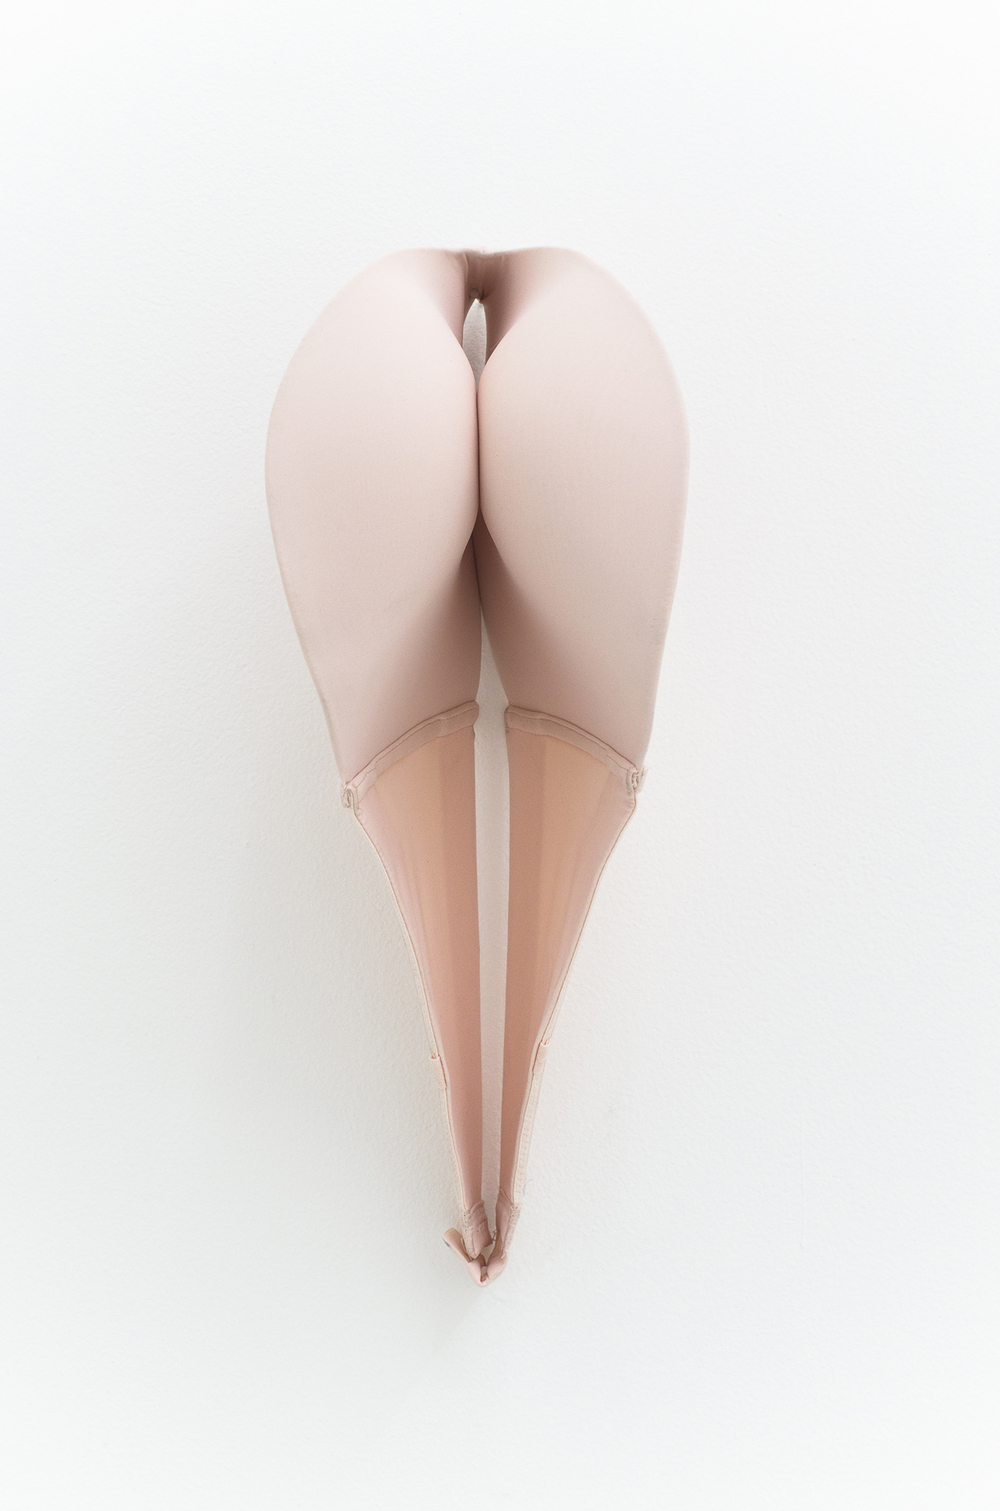 Mrs. Natural, 2010, Bra, 40 x 15 x 15cm